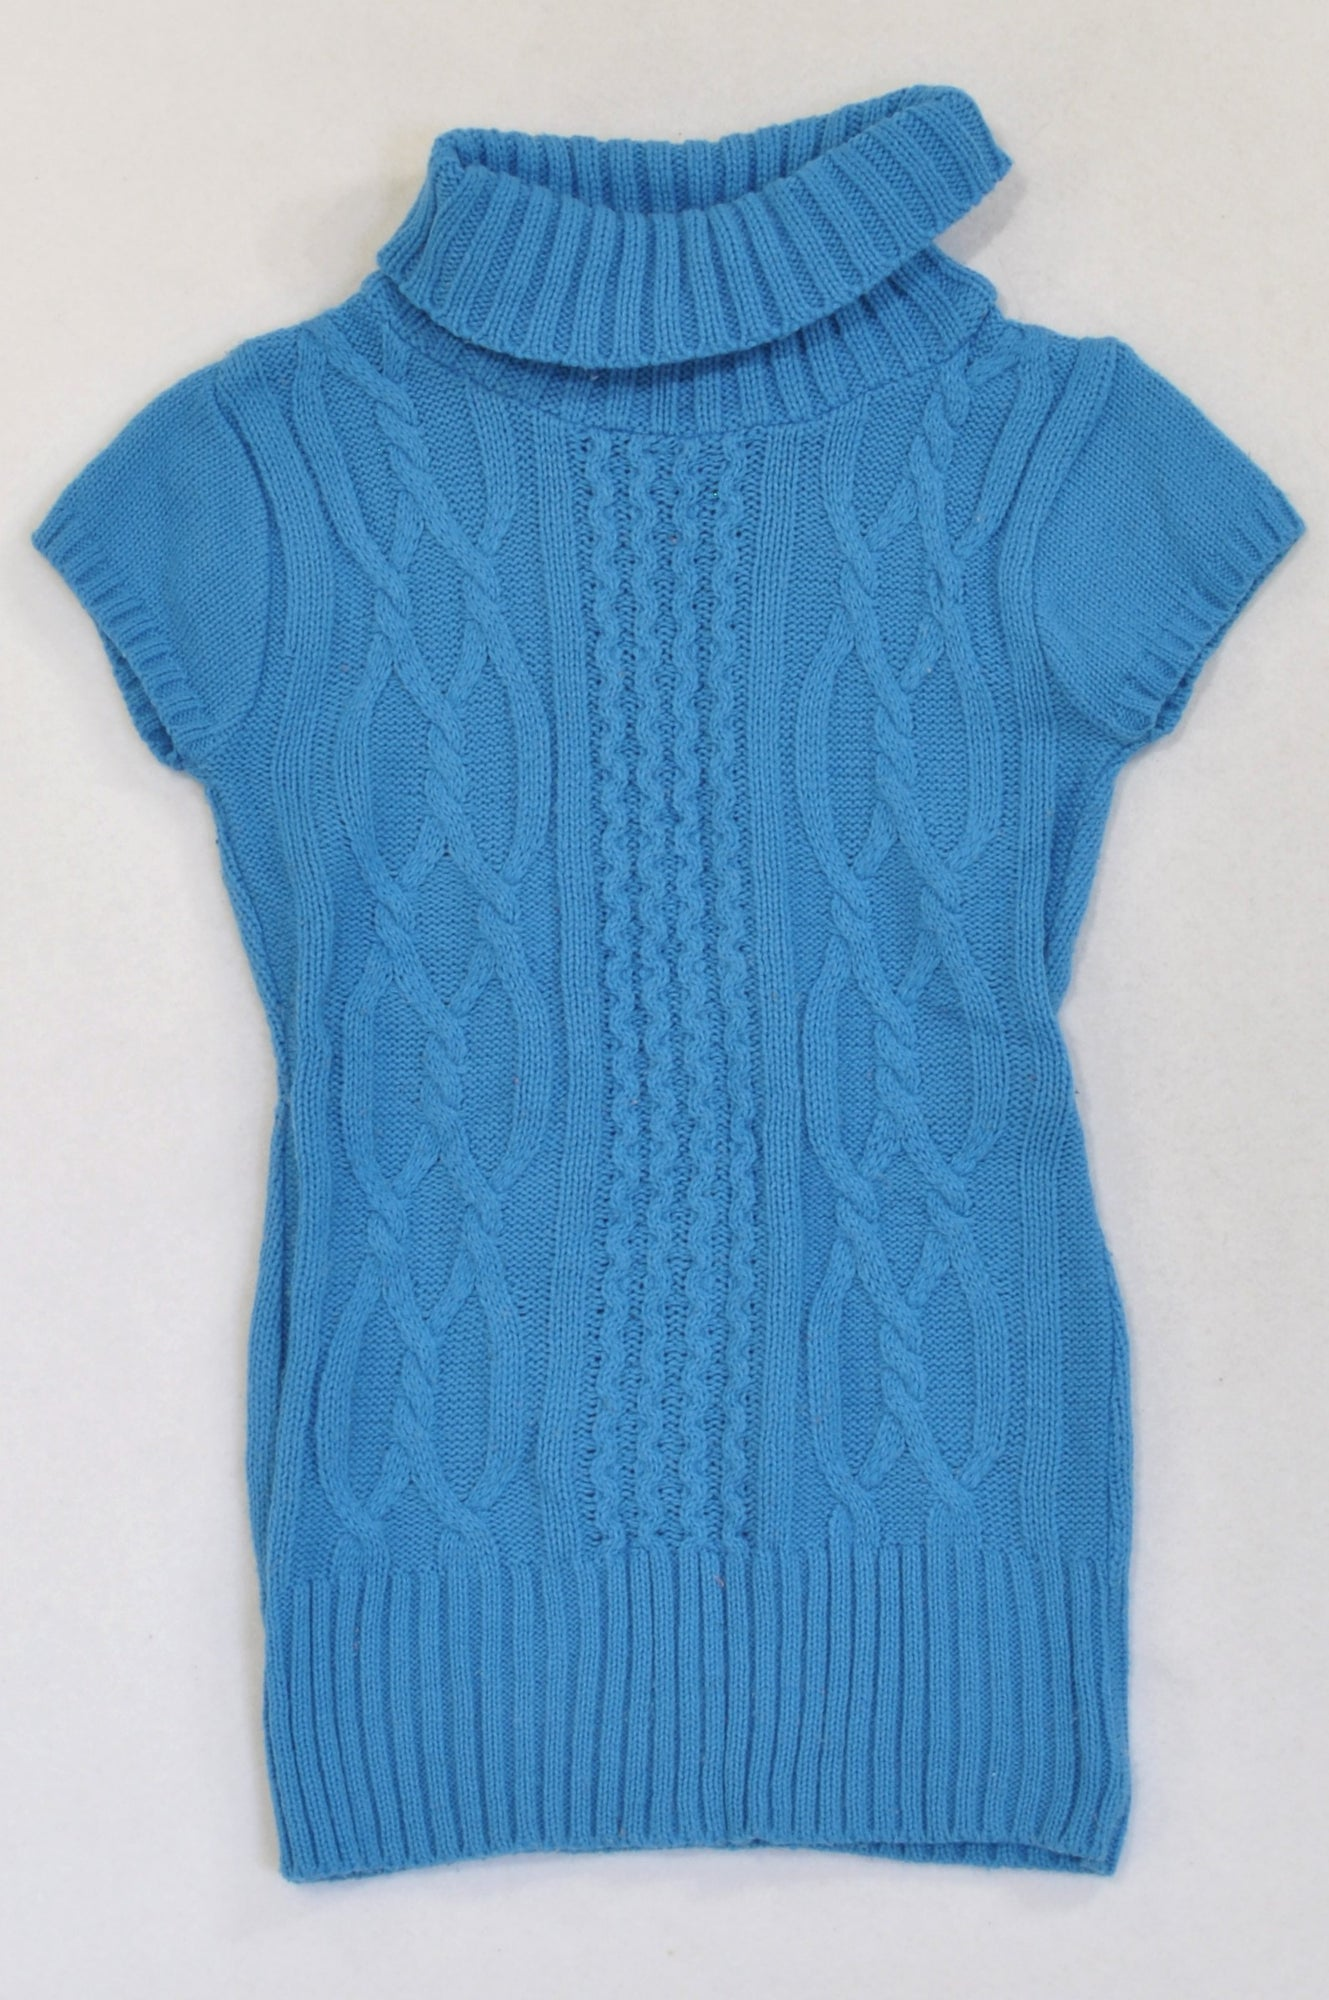 Pink Angel Blue Cable Knit High Neck Tunic Top Girls 5-6 years